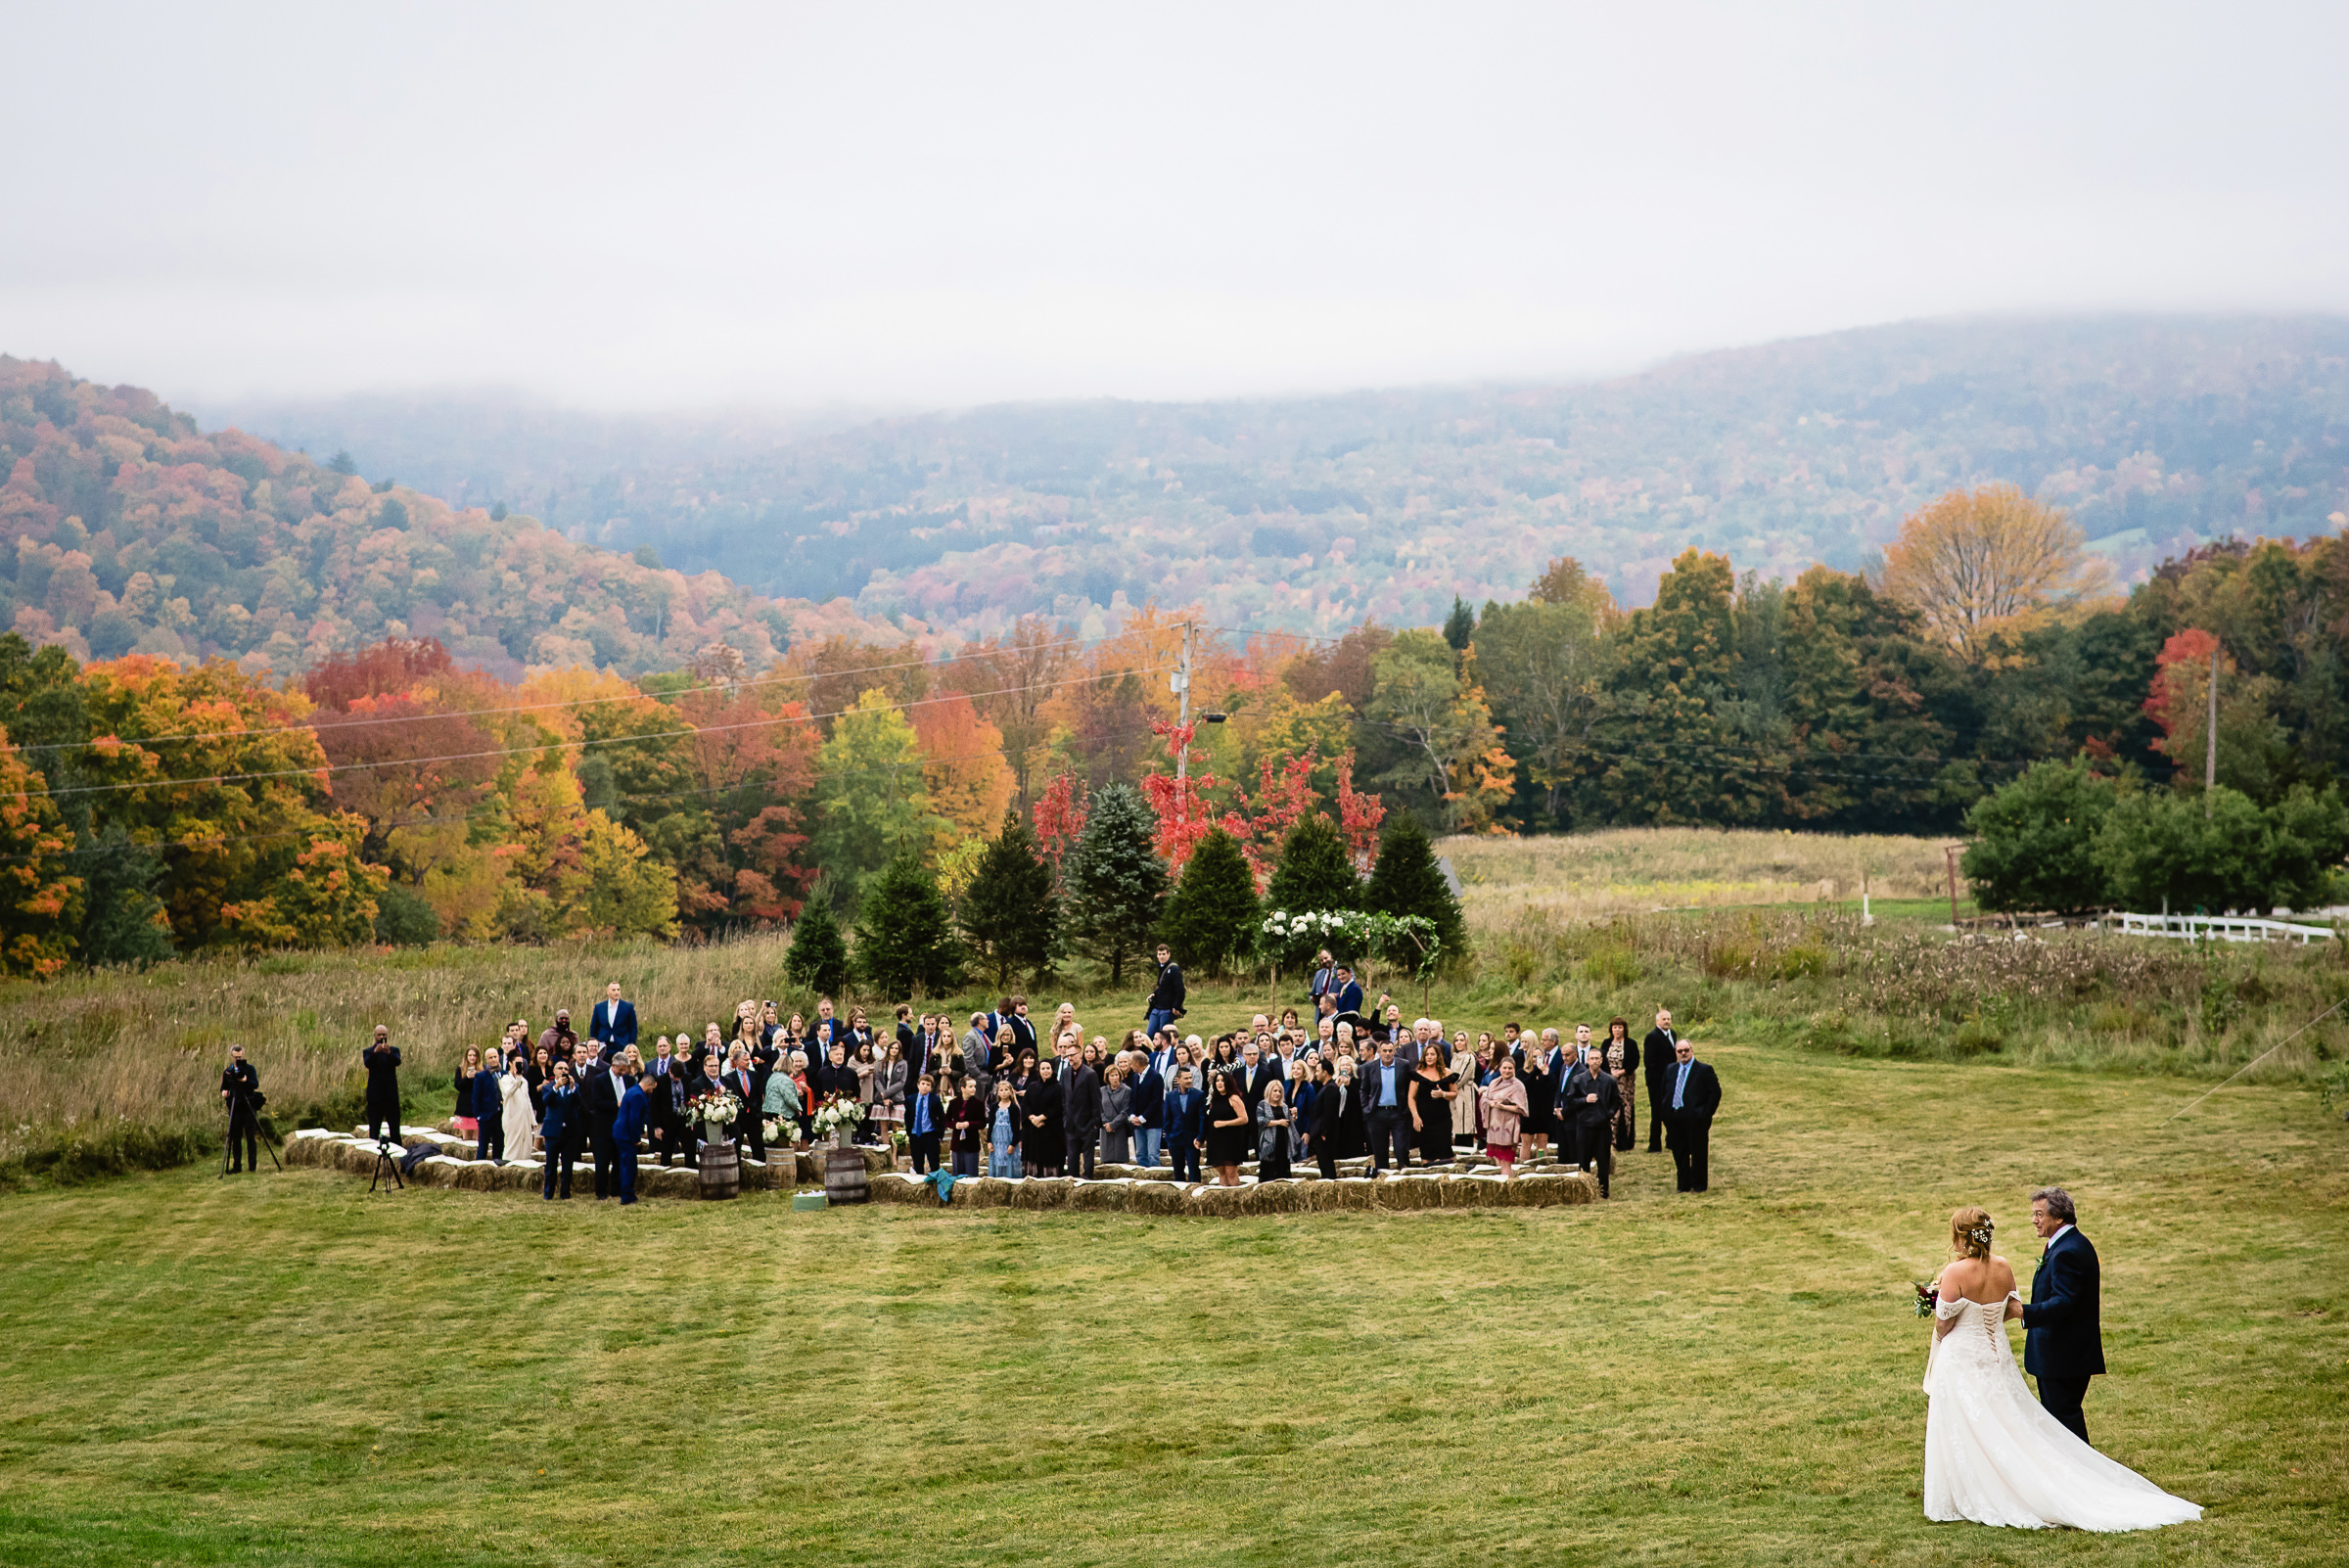 dad-getting-ready-to-walk-bride-down-the-aisle-in-the-colorful-fall-mountains-photo-by-hannah-photography